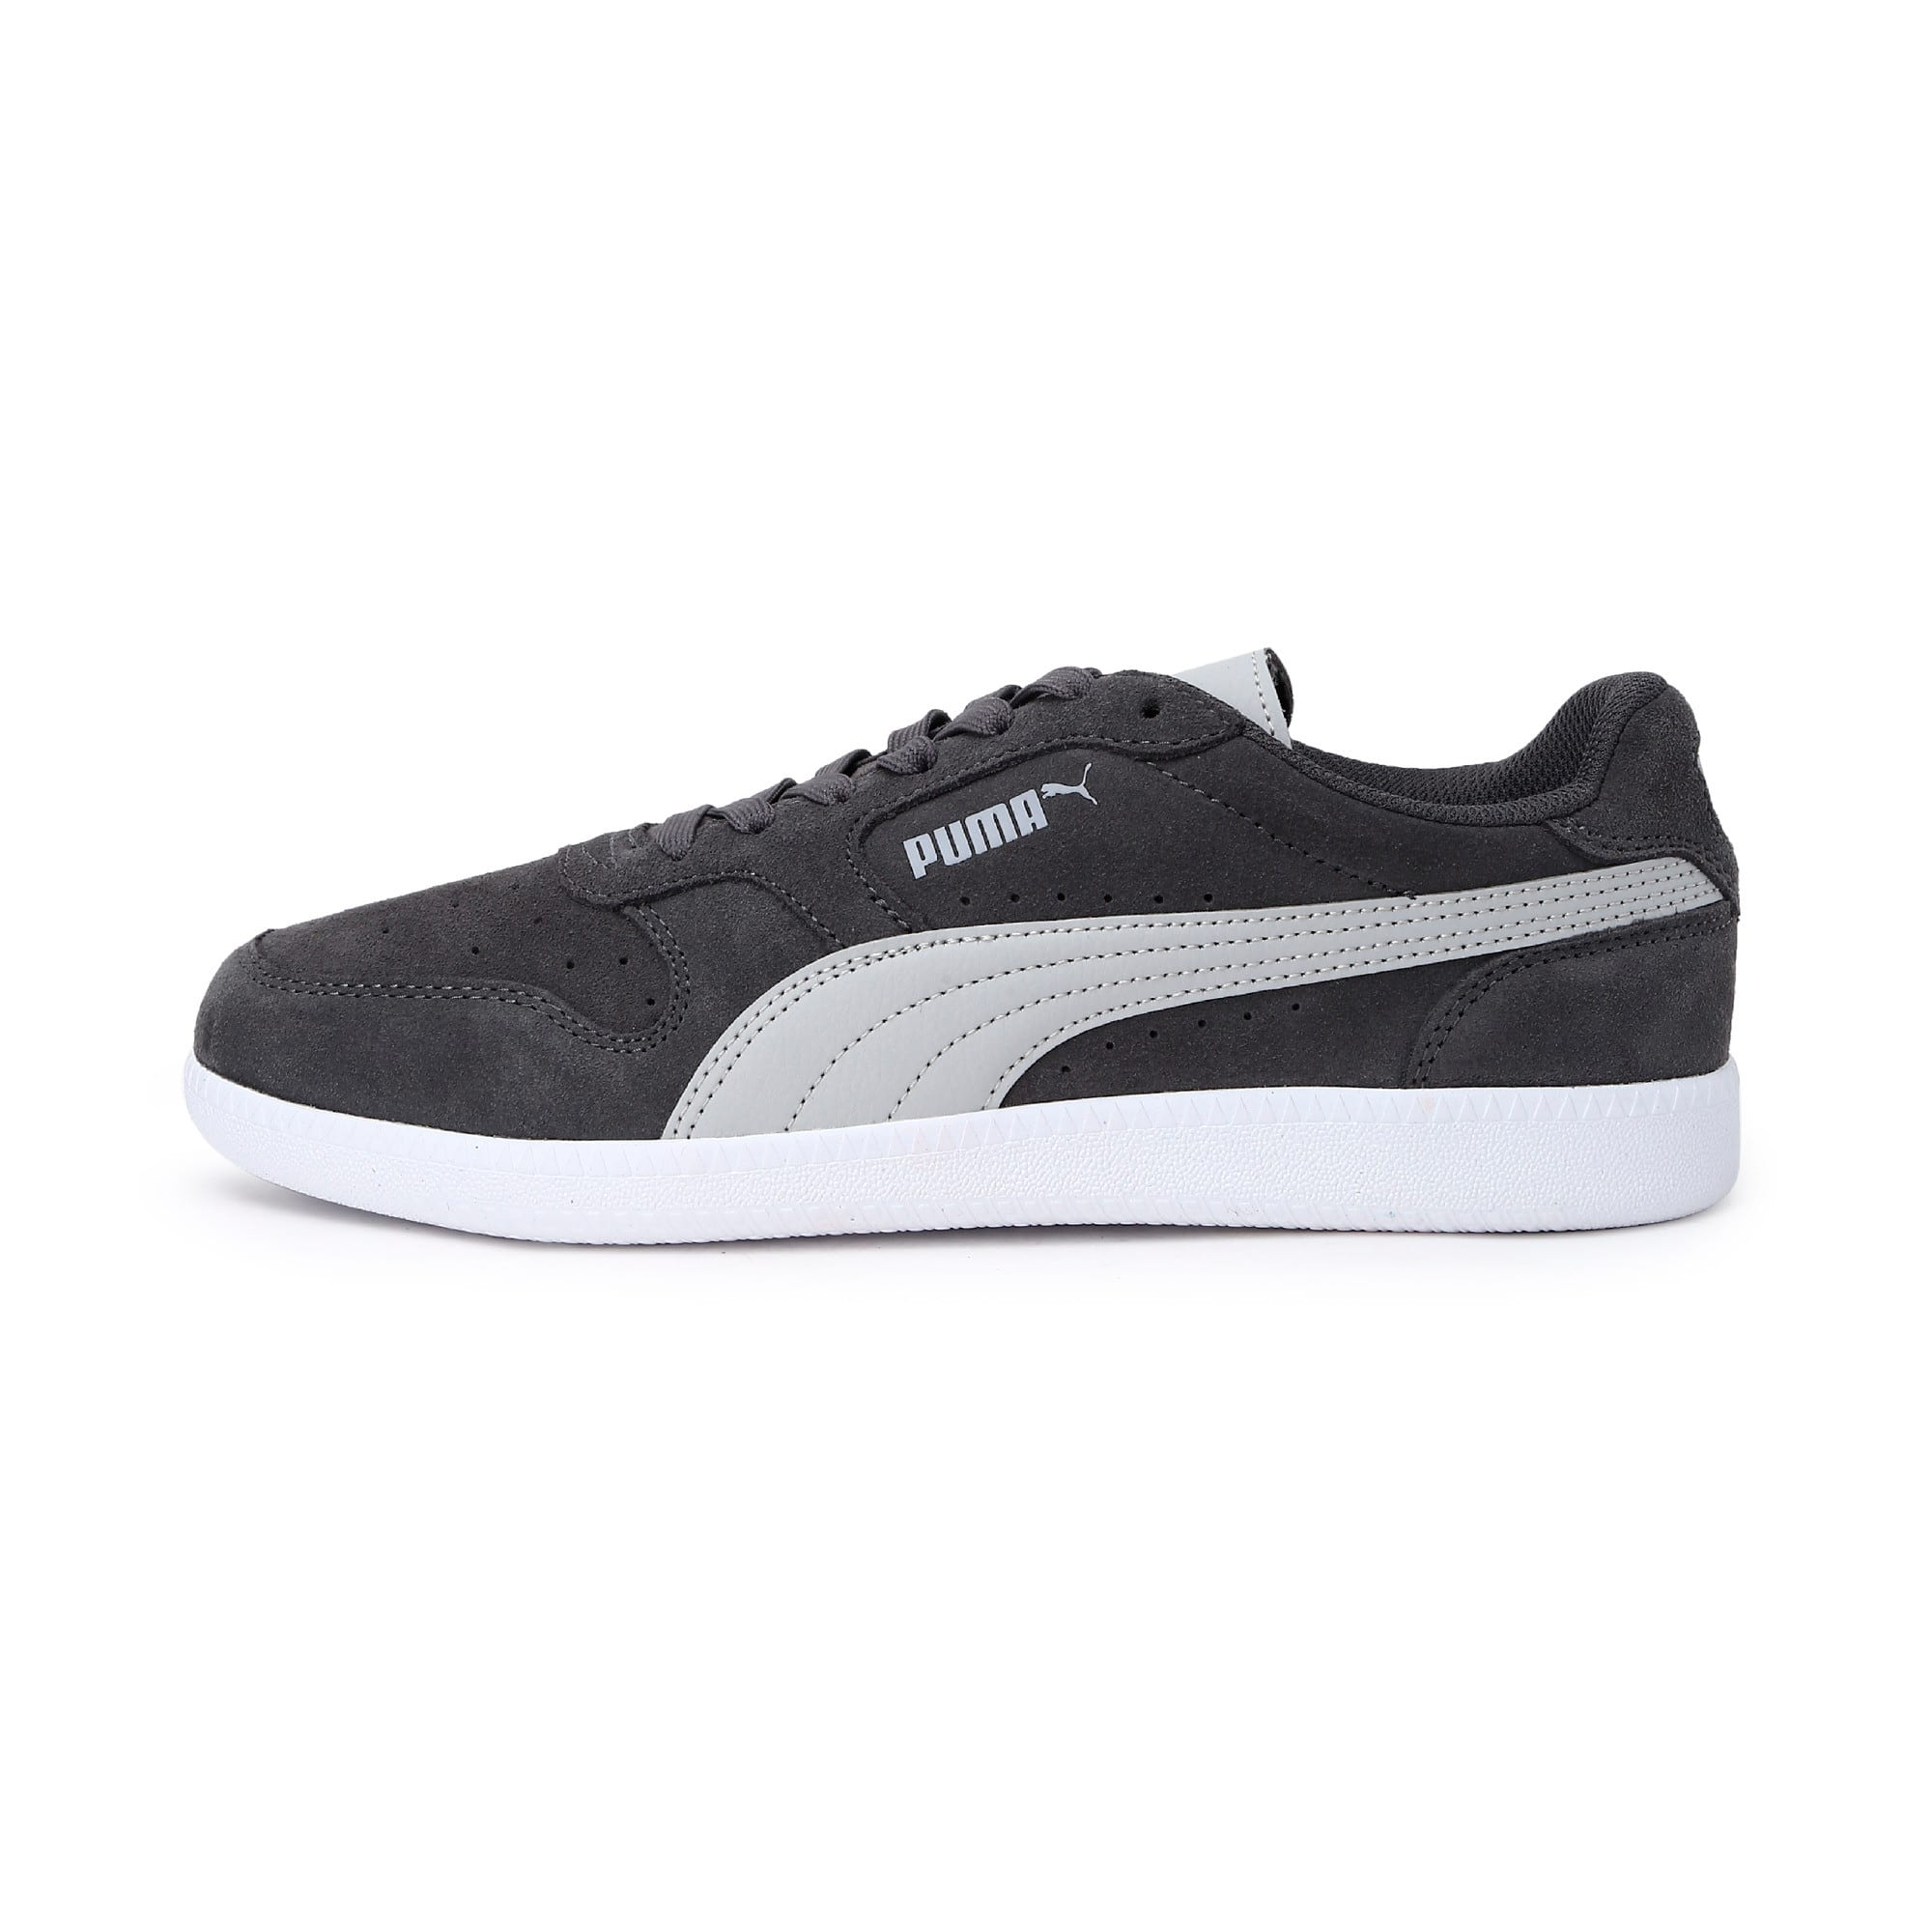 Thumbnail 1 of Icra Suede Trainers, CASTLEROCK-High Rise-White, medium-IND